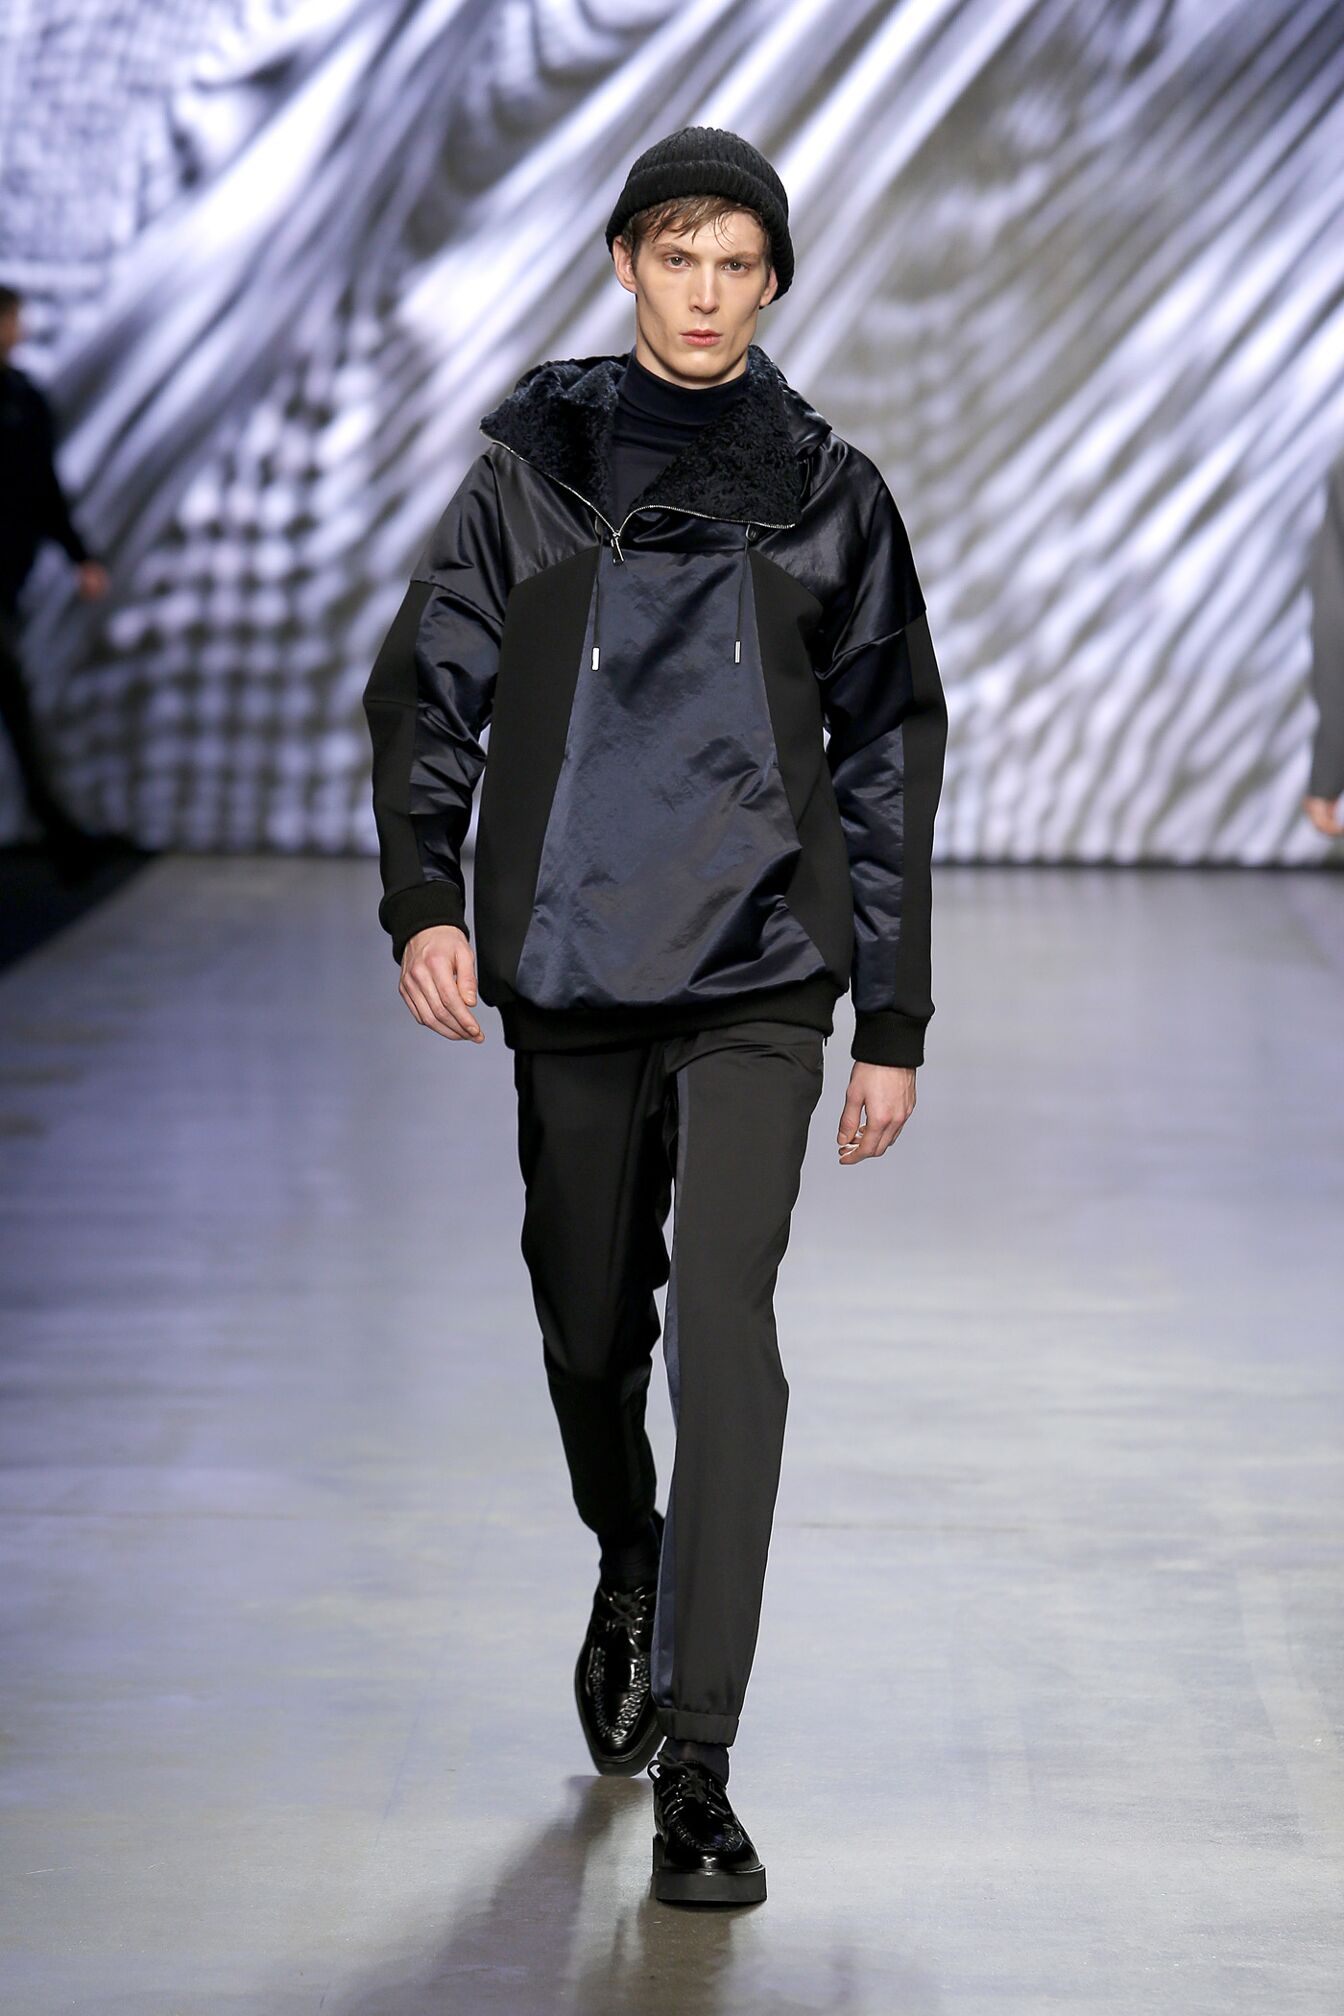 Iceberg Winter 2014 Catwalk